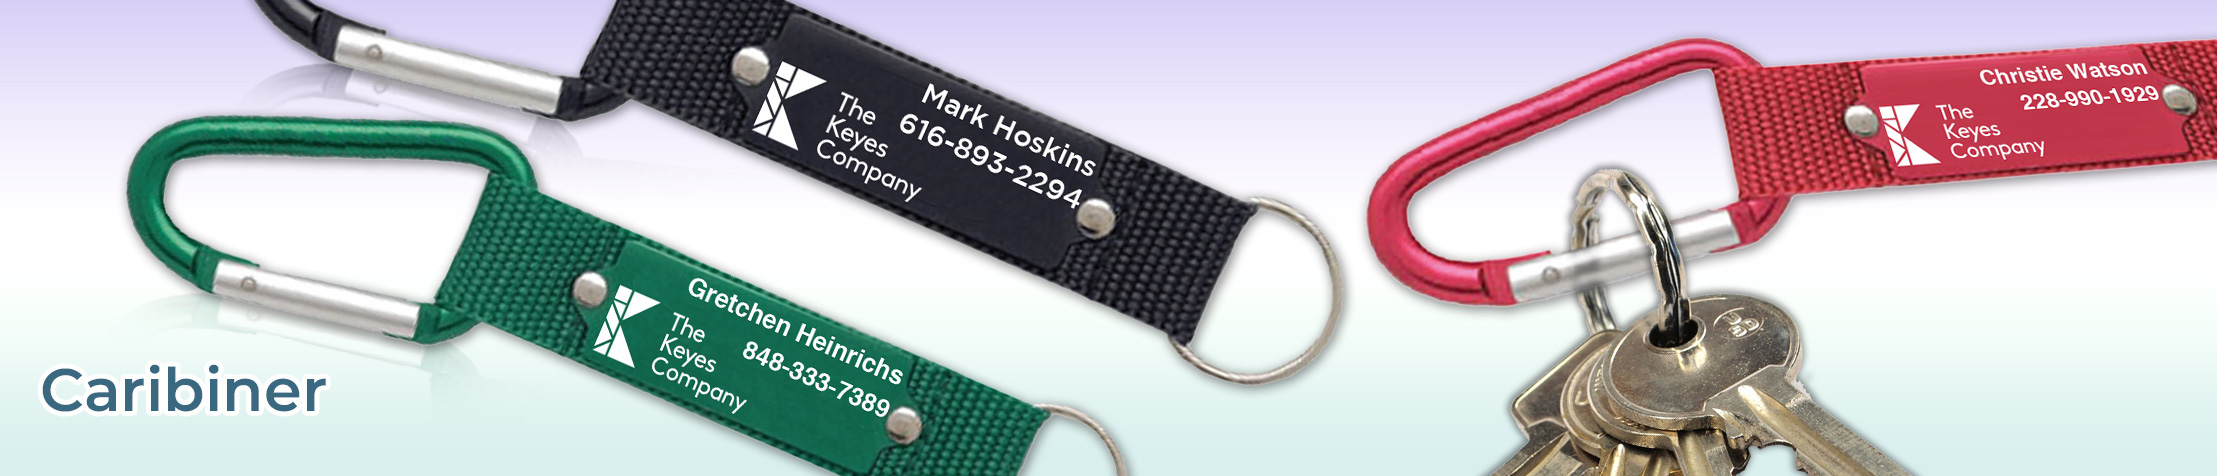 The Keyes Company Real Estate Carabiner - The Keyes Company  personalized realtor promotional products | BestPrintBuy.com